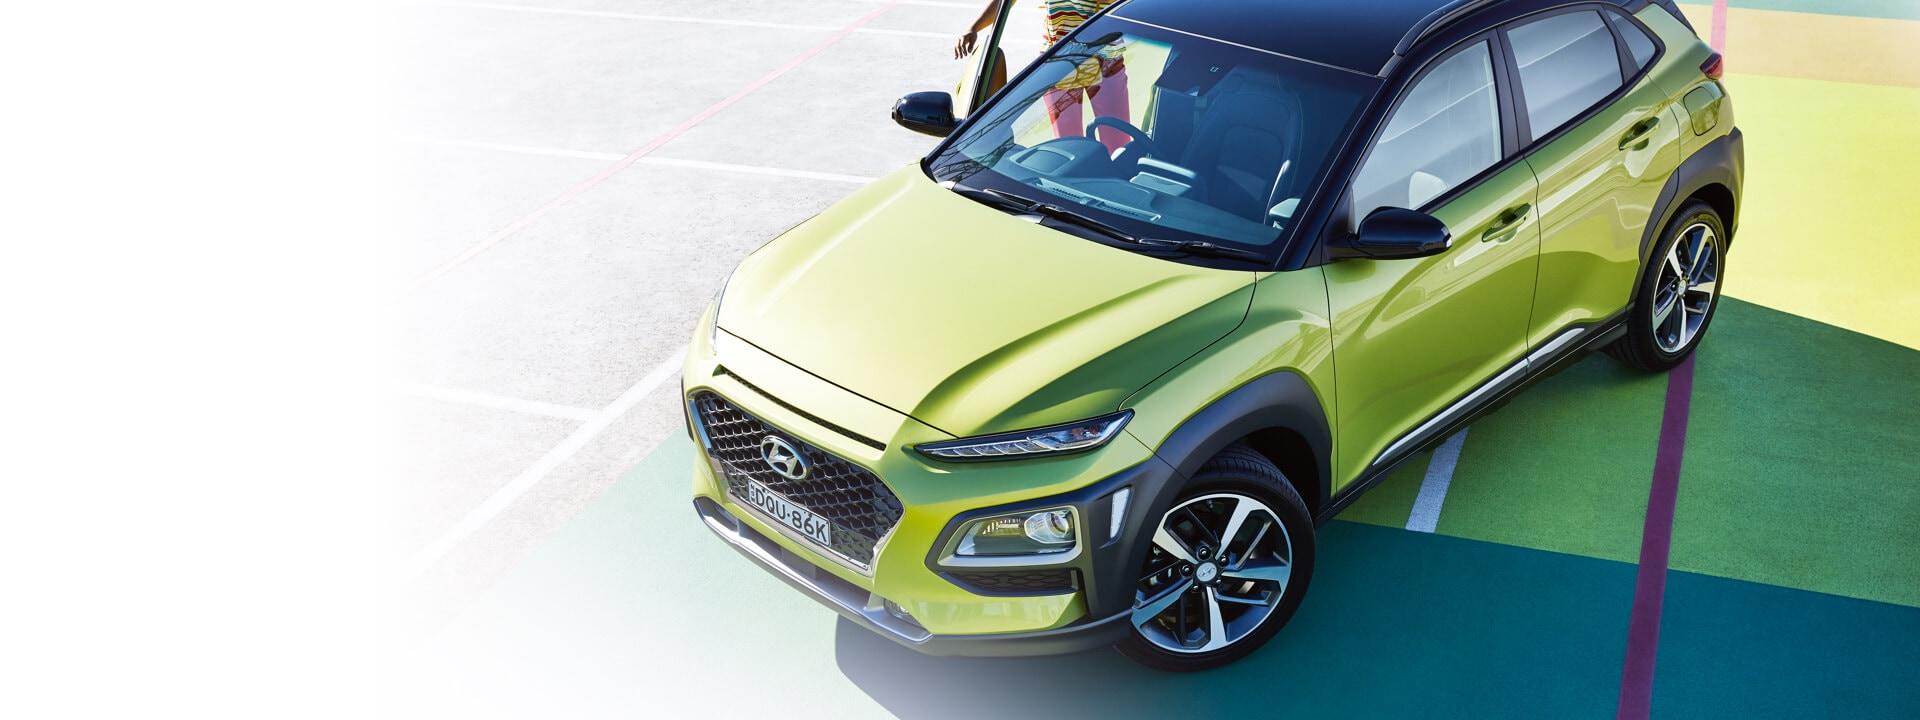 Hyundai_News-Article-Generic_Vehicles_desktop_1920x720.jpg